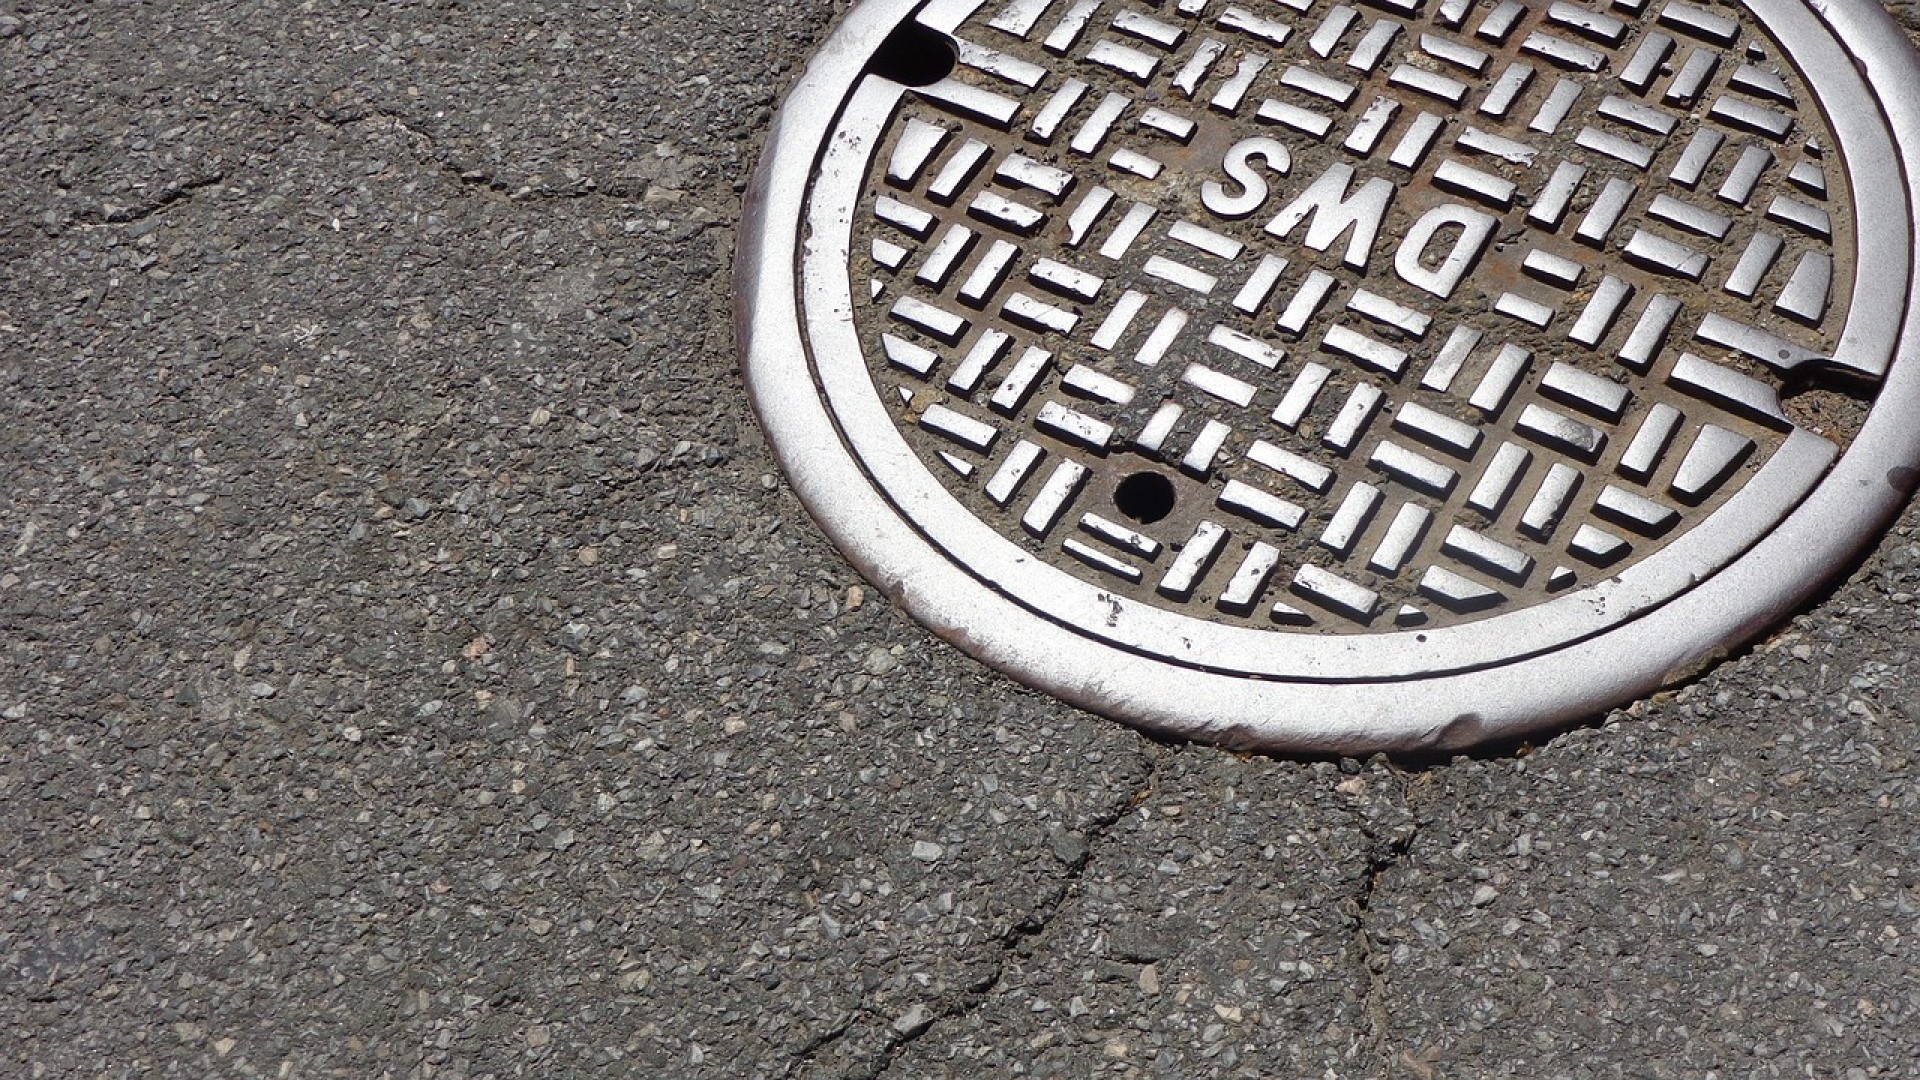 What You Need to Know About Combined Sewer Overflows | Old sewer systems combined sanitation water with stormwater drains, resulting in sewage structures that can become overwhelmed in heavy rain.